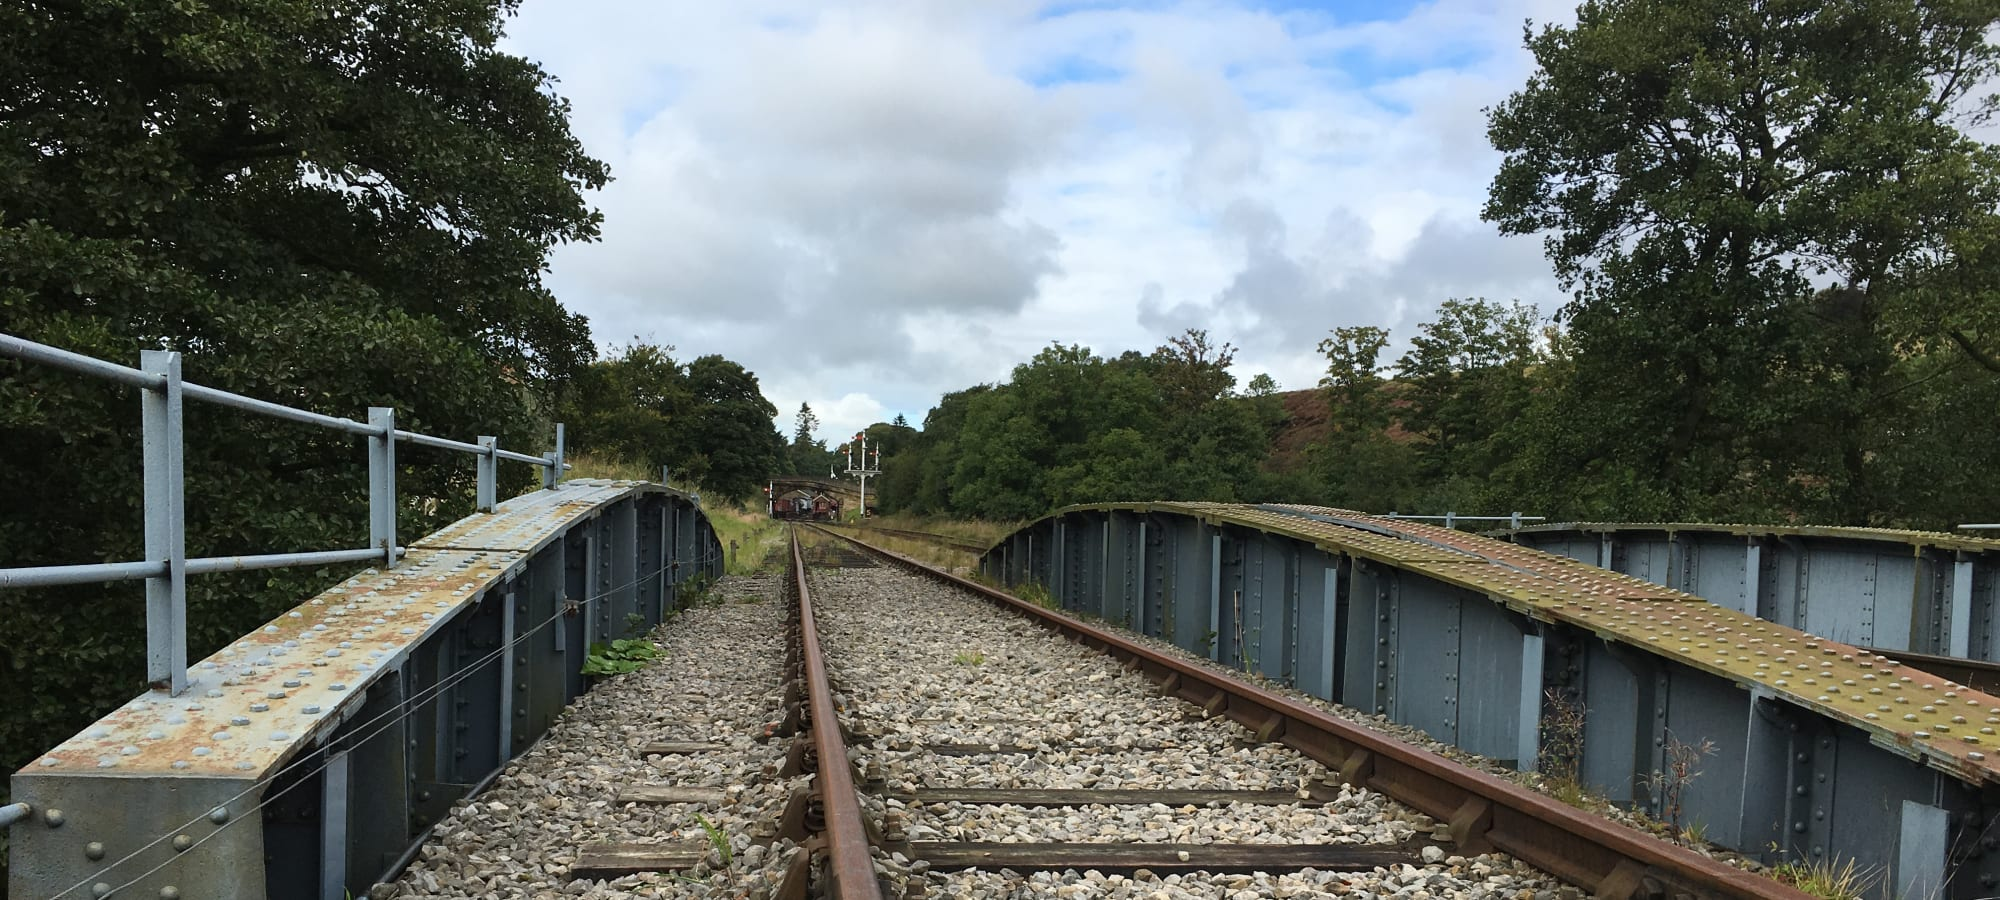 Project 1: Goathland Bridges Renewal